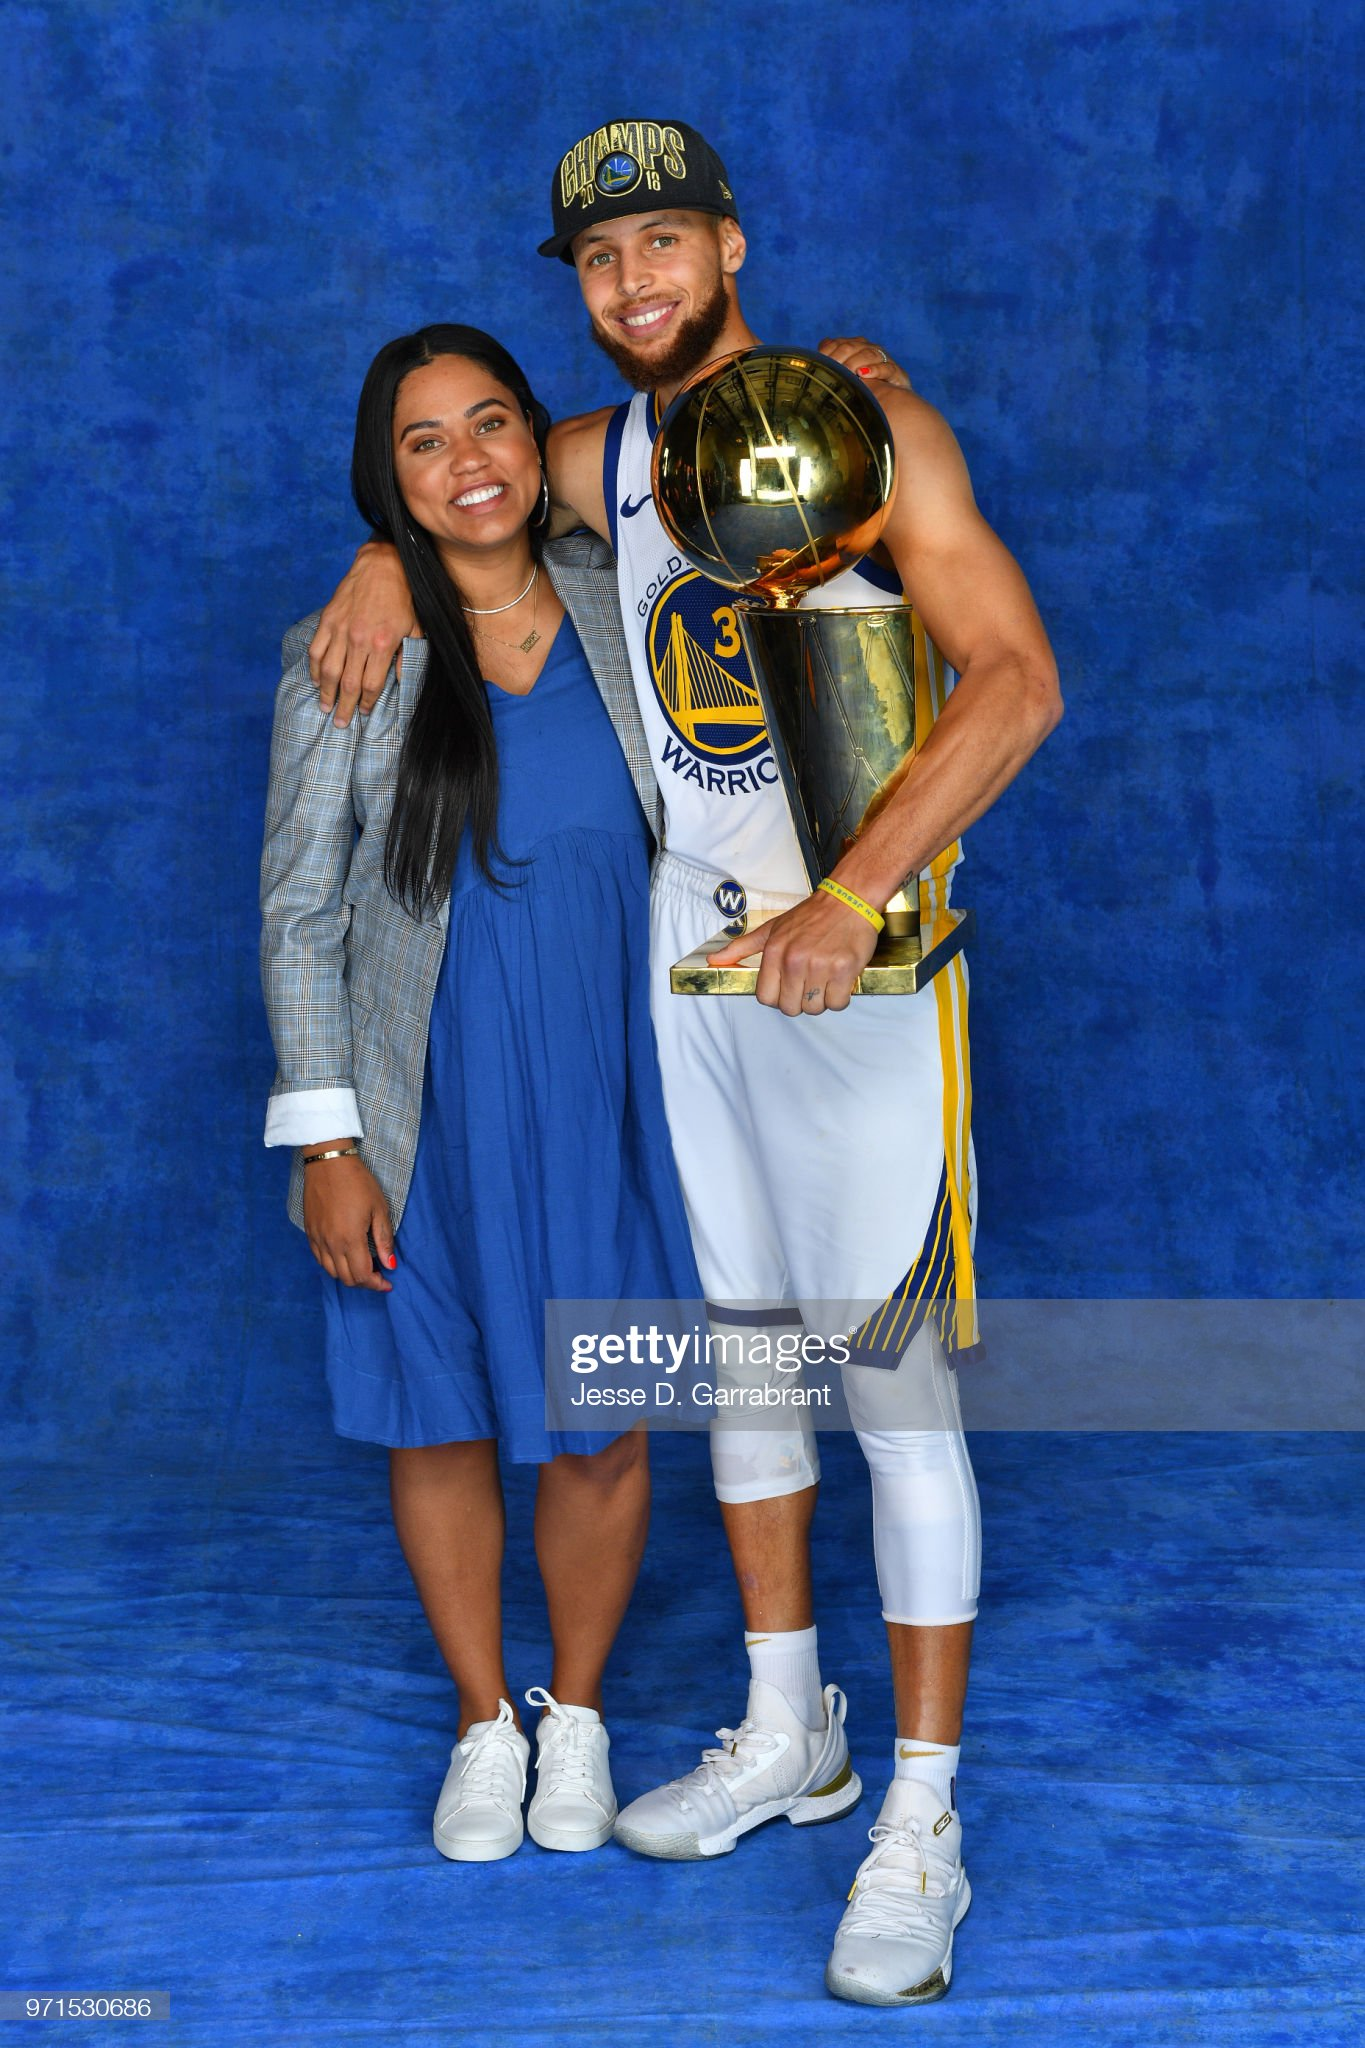 ¿Cuánto mide Ayesha Curry? - Real height Stephen-curry-of-the-golden-state-warriors-poses-for-a-portrait-with-picture-id971530686?s=2048x2048